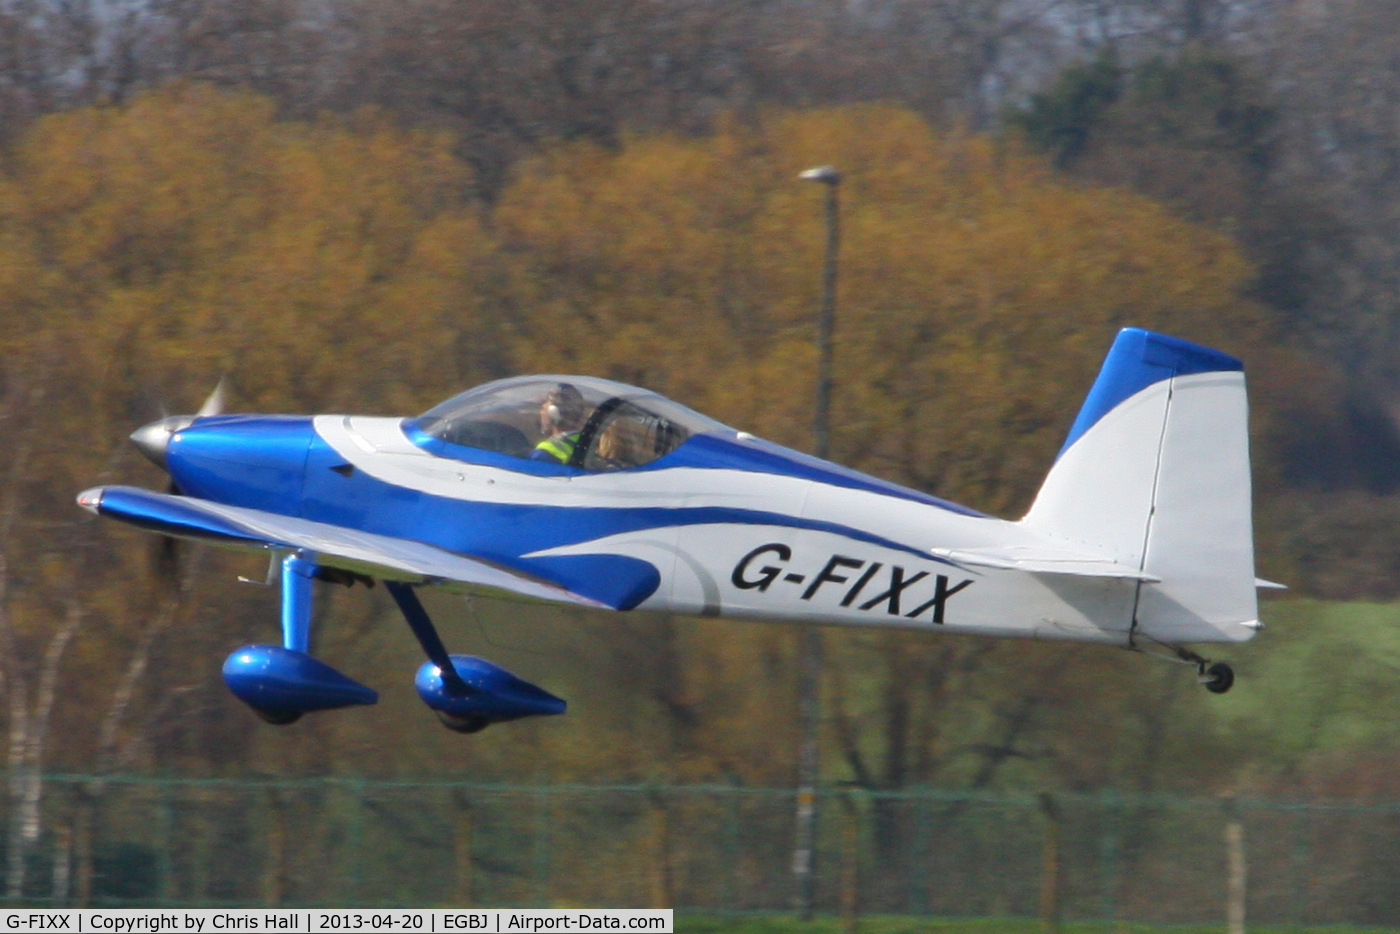 G-FIXX, 2010 Vans RV-7 C/N PFA 323-14225, privately owned